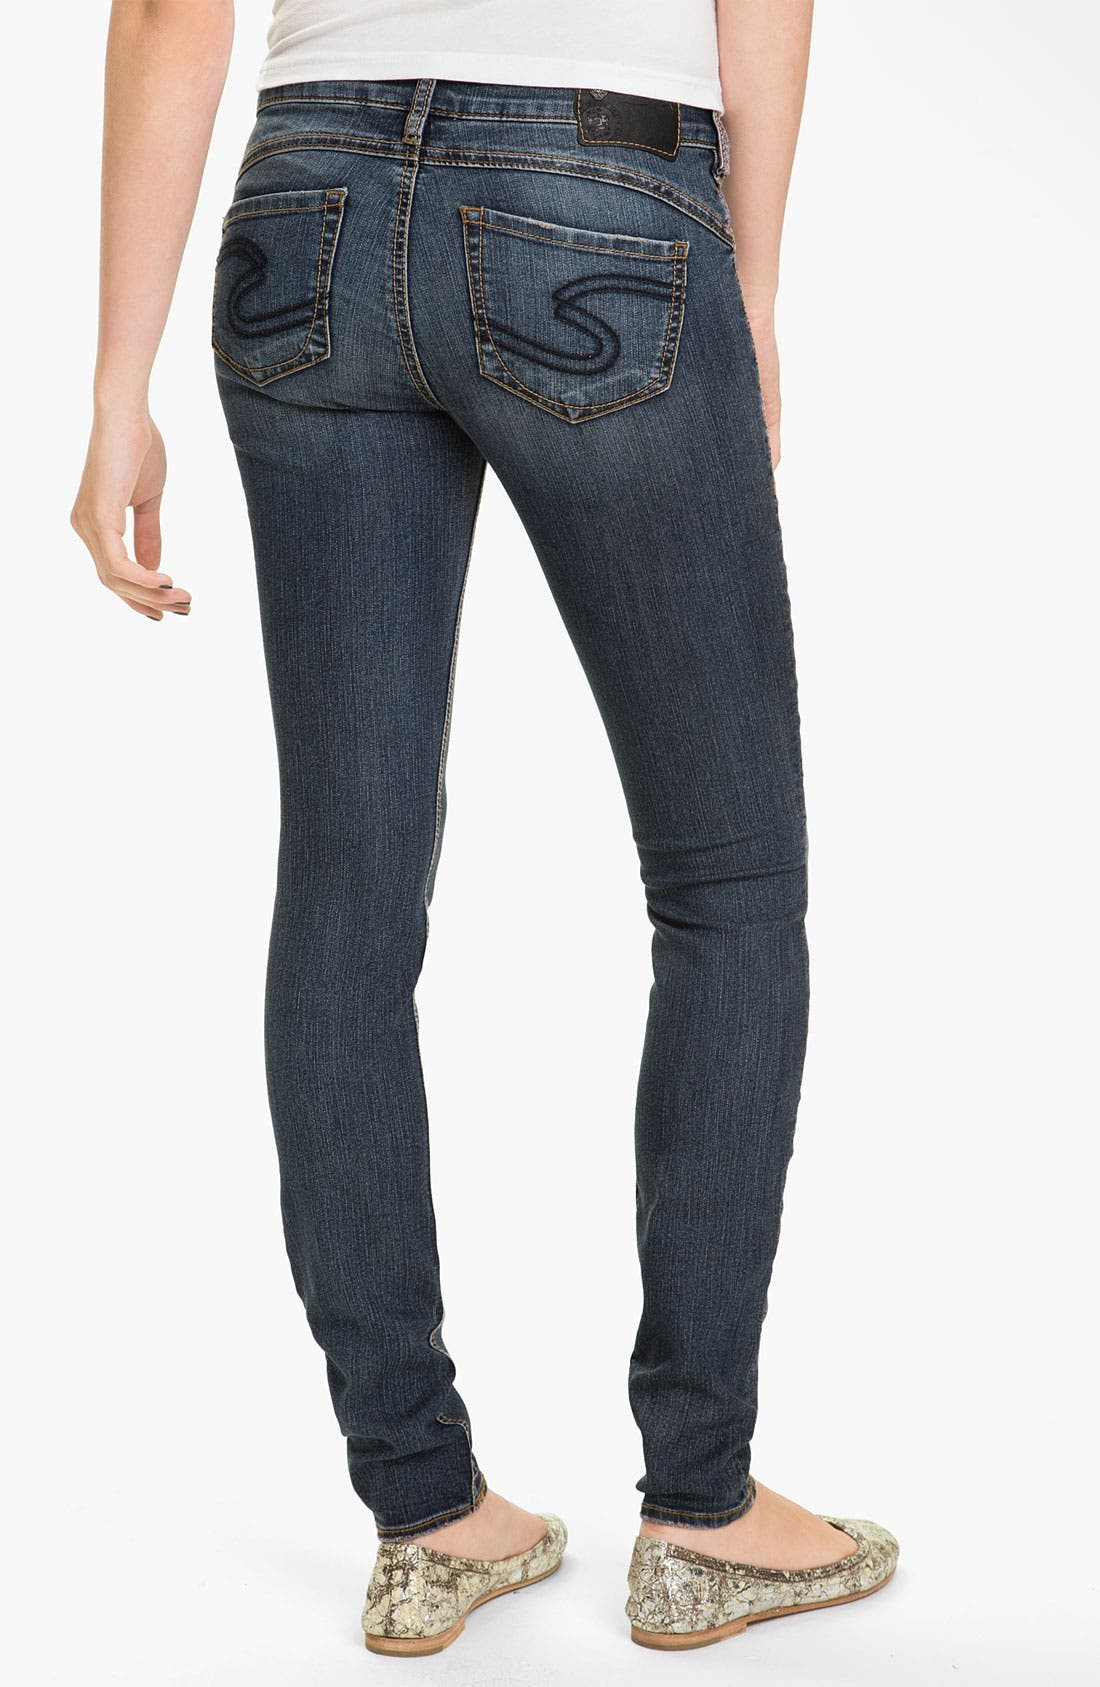 Main Image - Silver Jeans Co. 'Camden Rose' Skinny Jeans (Juniors)